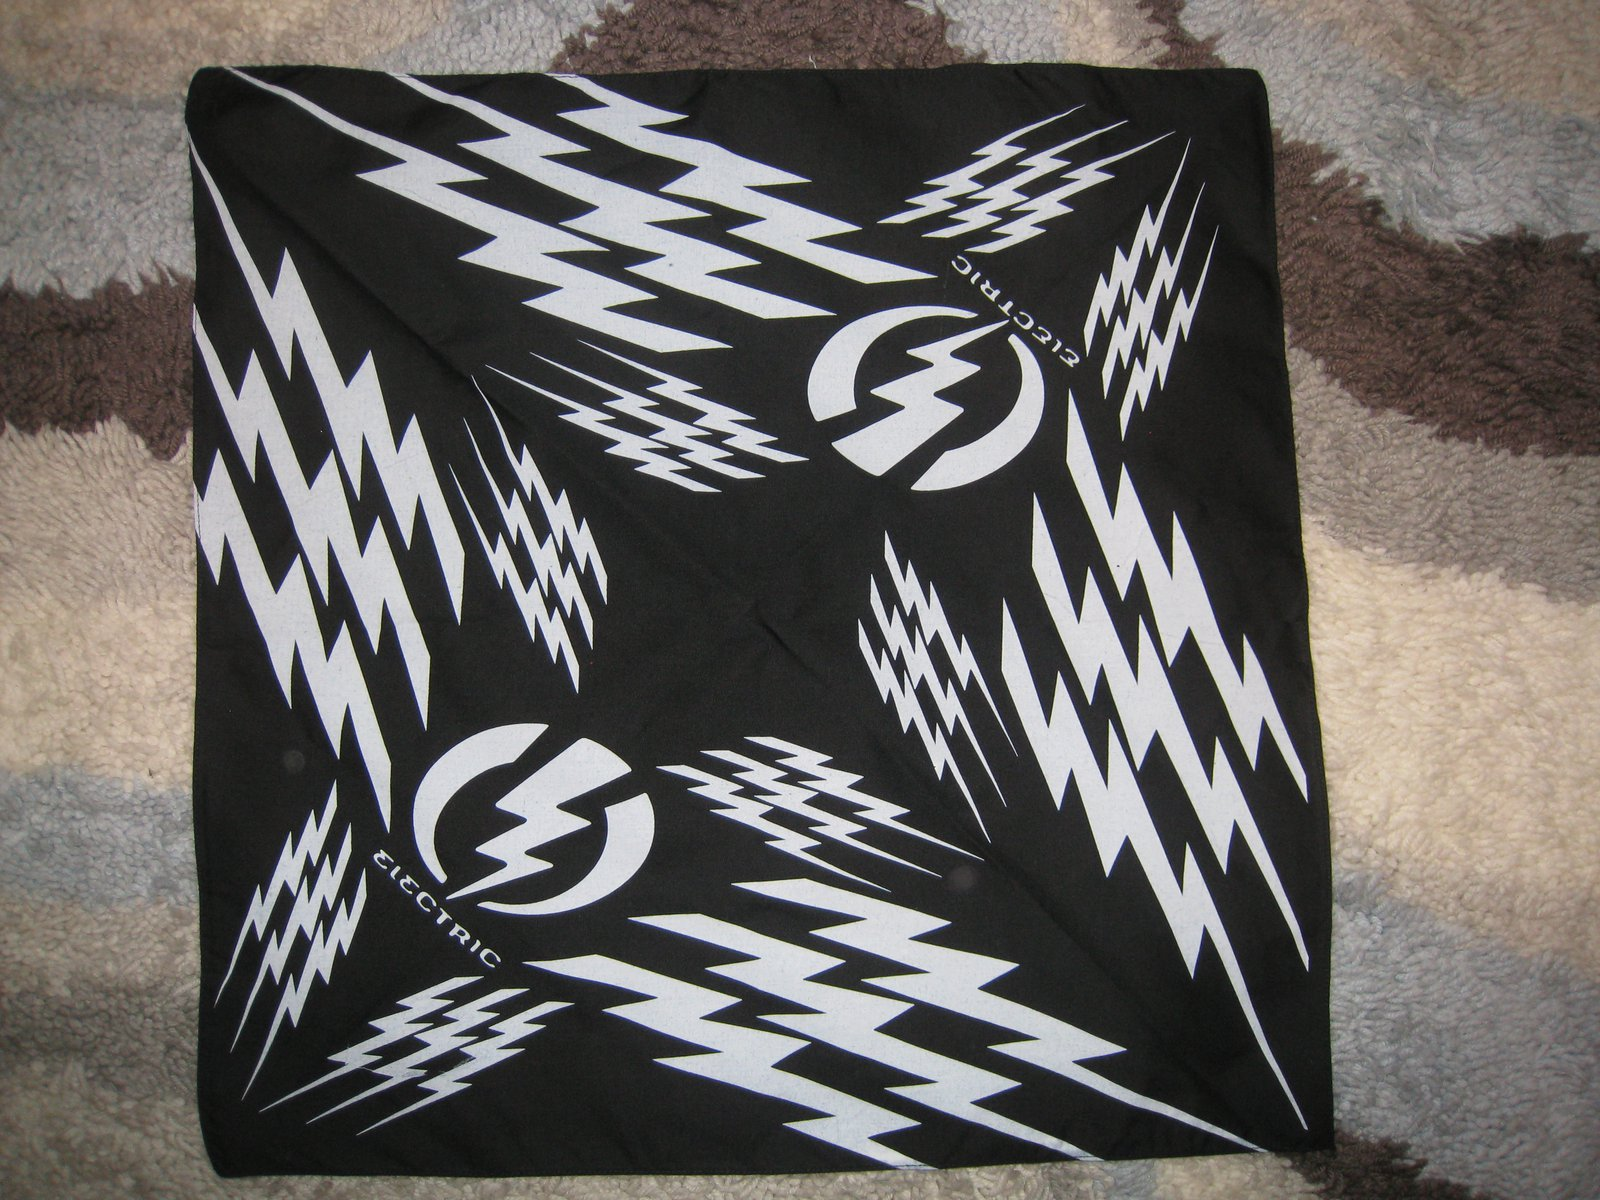 Electric bandana for sale